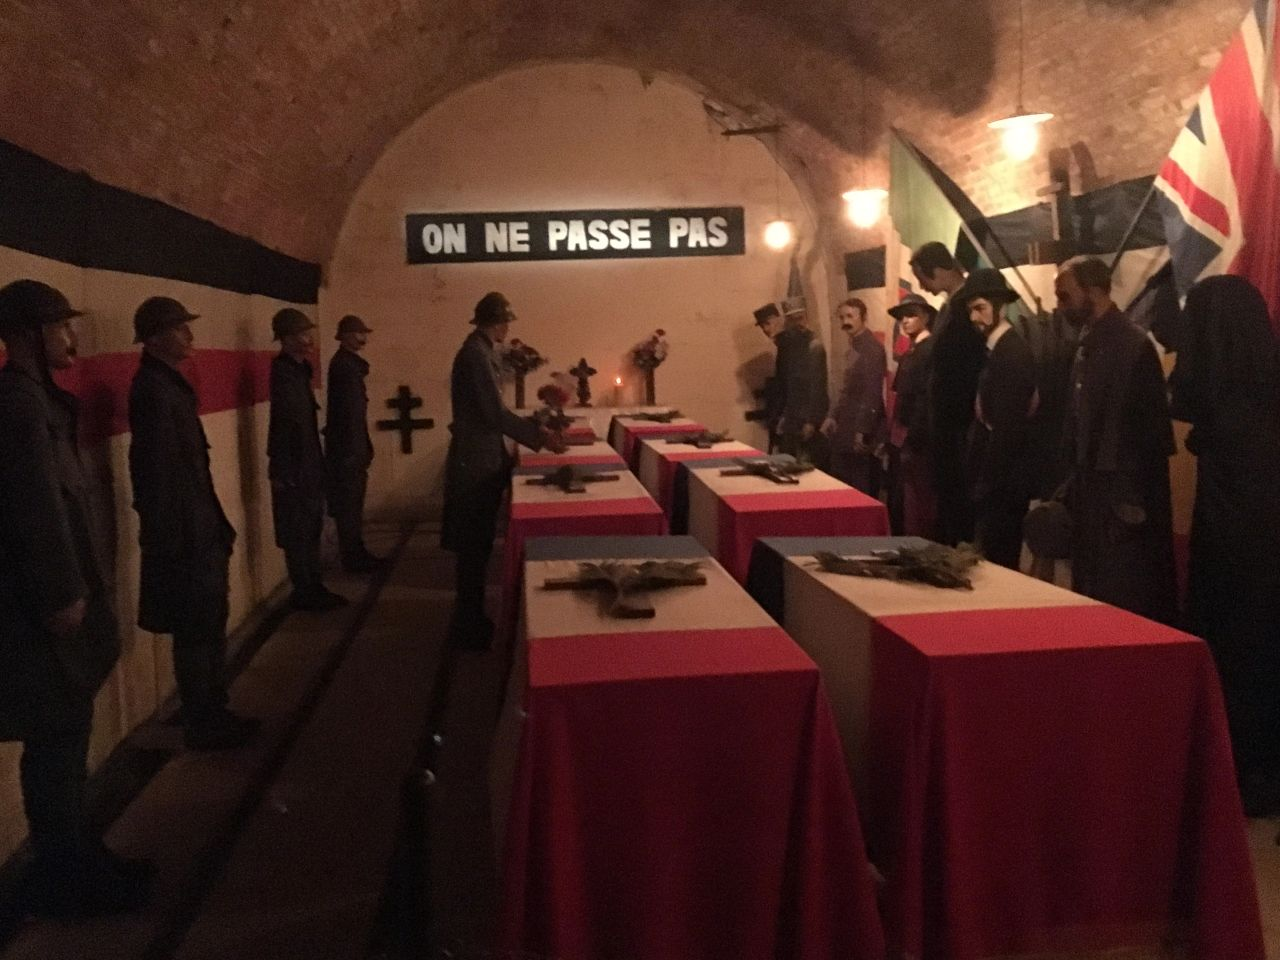 """None shall pass."" One of the displays inside the Citadel of Verdun, showing a French memorial ceremony after the Battle of Verdun."